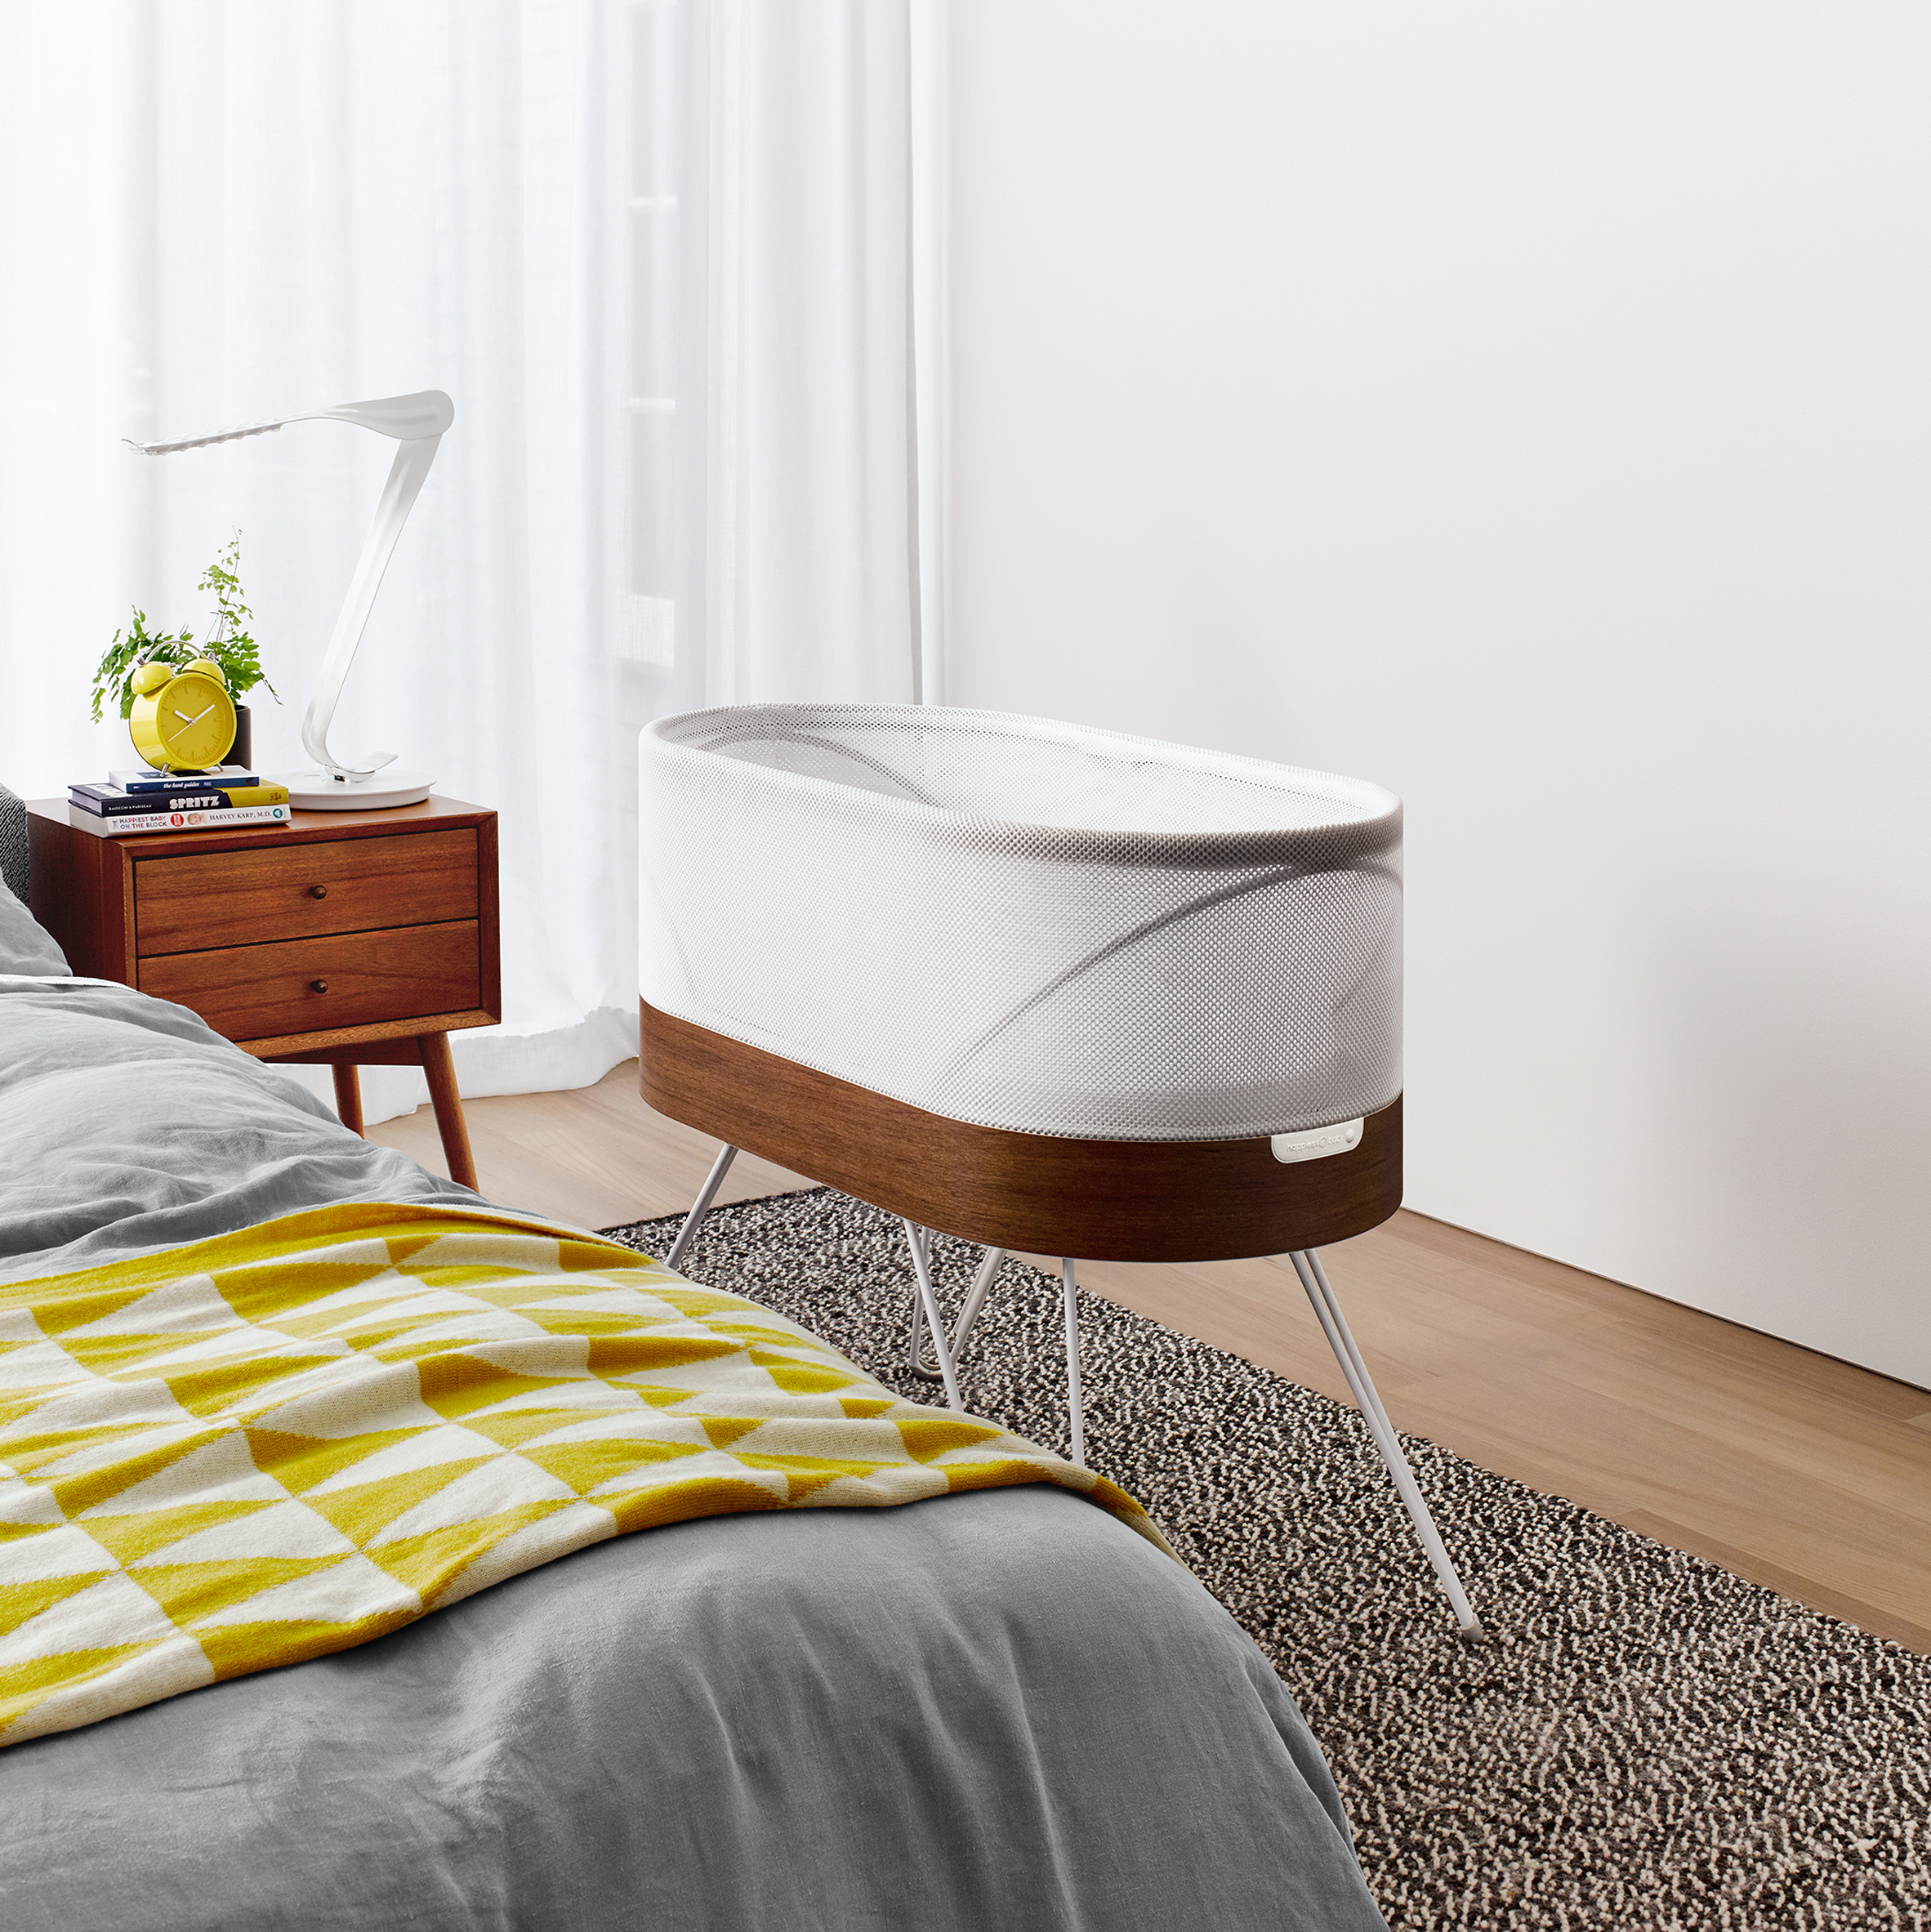 Fabric-covered gadgets: Snoo crib